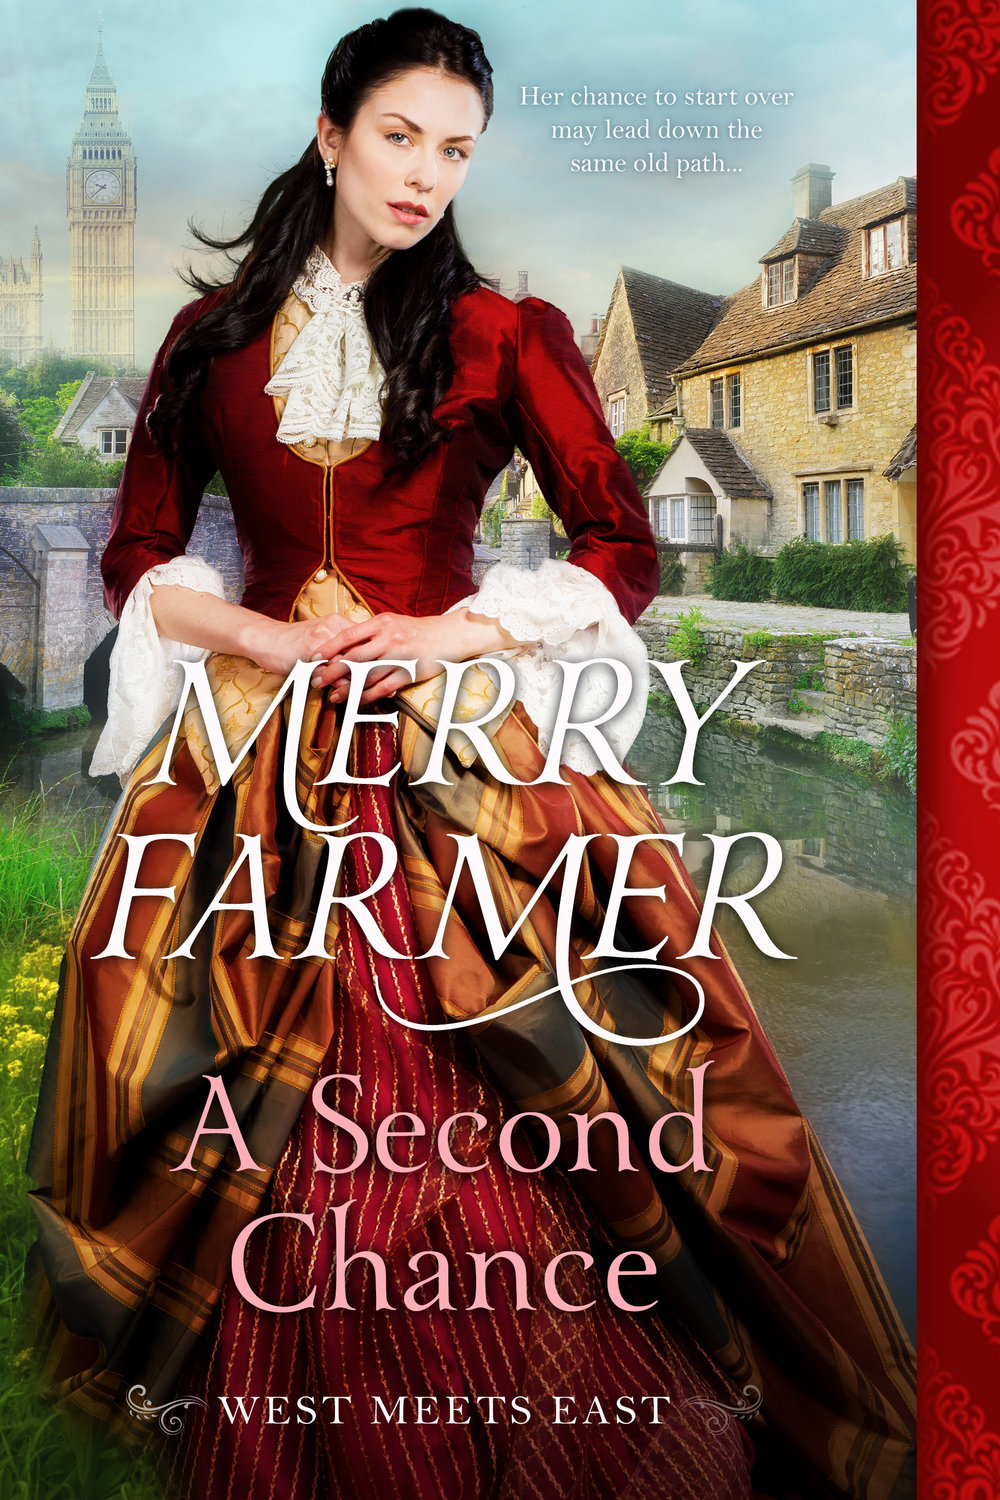 A Second Chance (Book 3) - Noelle Walters can hardly believe how lucky she is to be given a chance to start over after a hard life as a soiled dove in the American West. But almost from the moment she steps off the ship in London, England, everything goes wrong. The Lord of the manor where she was supposed to take up a position as a maid has disappeared under scandalous circumstances, and Noelle's services are no longer required. Alone in a foreign country, penniless, and ignorant of the ways of British society, Noelle fears that her only chance of survival will be taking up her old profession again.Ram Singh hasn't been able to forget the beautiful American woman he escorted from his employer's ship to her new job. When he discovers that Noelle has met with nothing but misfortune, he feels compelled to help her in every way he can. Including sneaking her into his lodgings to save her from the street. But helping Noelle puts Ram's plans for the future in jeopardy when they are discovered together. They must face the choice to survive any way they can on their own or hope for a second chance to fall in love.PLEASE BE ADVISED – Steam Level: Hot